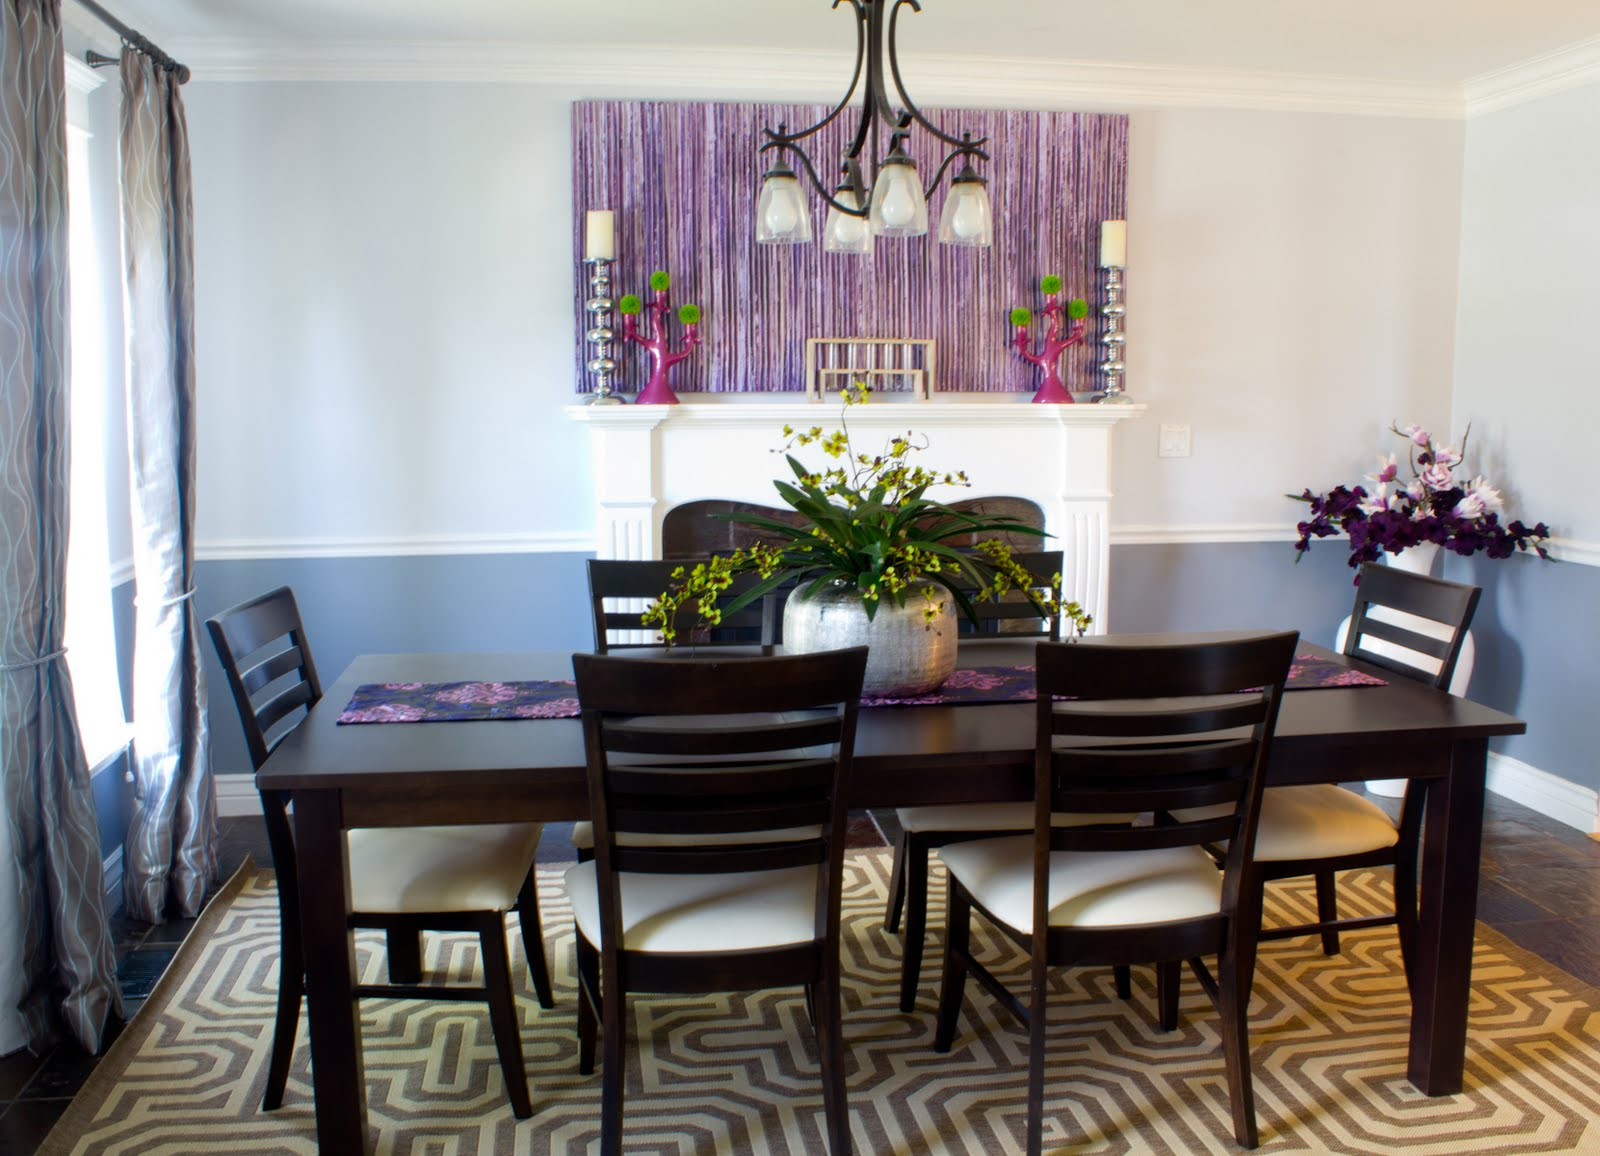 http://homesfeed.com/wp-content/uploads/2015/12/dining-room-seat-cushions-in-natural-design-together-with-dark-finishing-and-attractive-patterned-rug-plus-purple-art-and-beautiful-drapes-on-windows.jpg